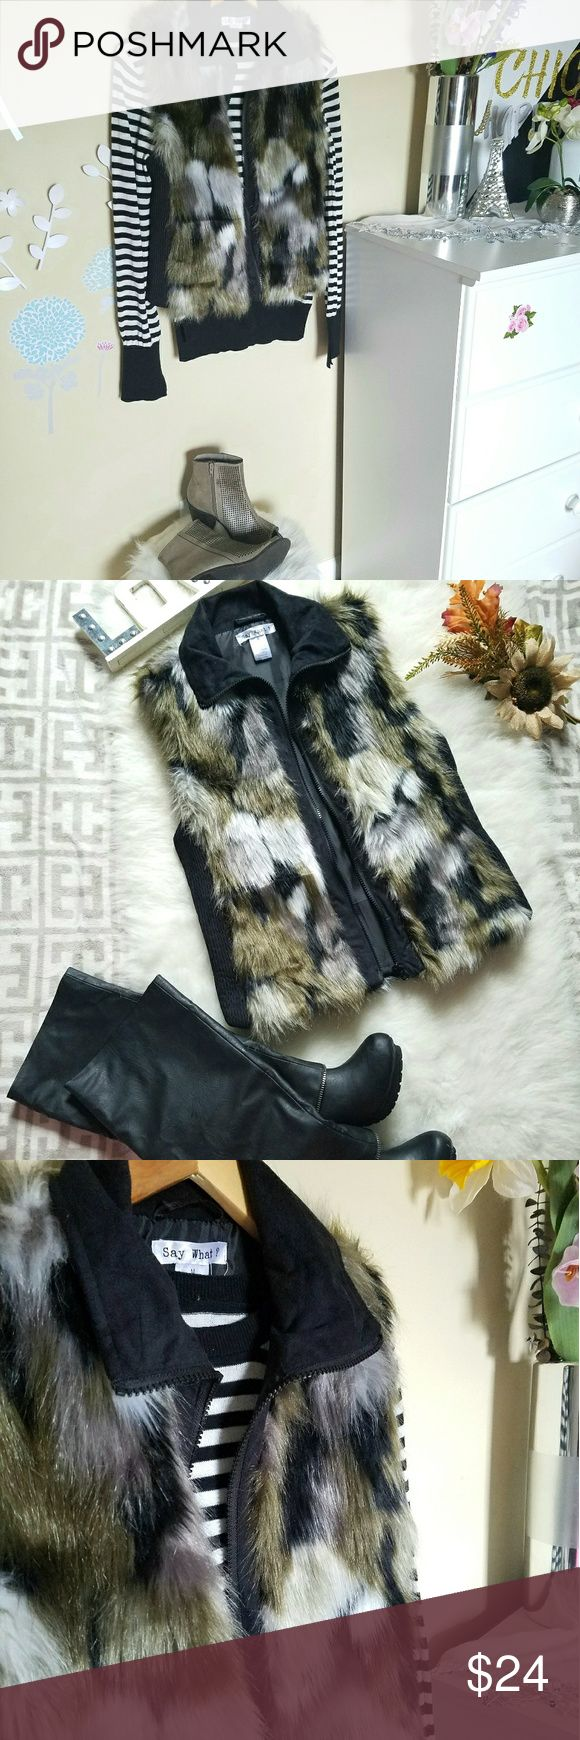 🍁🖤NWOT Faux Fur Vest🖤🍁 Faux fur material on back and front.  Zips in front.  Pockets on both sides.  Has some stretch due to black material on sides.  A size M, runs a bit S, so can work for XS-M (Juniors). Jackets & Coats Vests